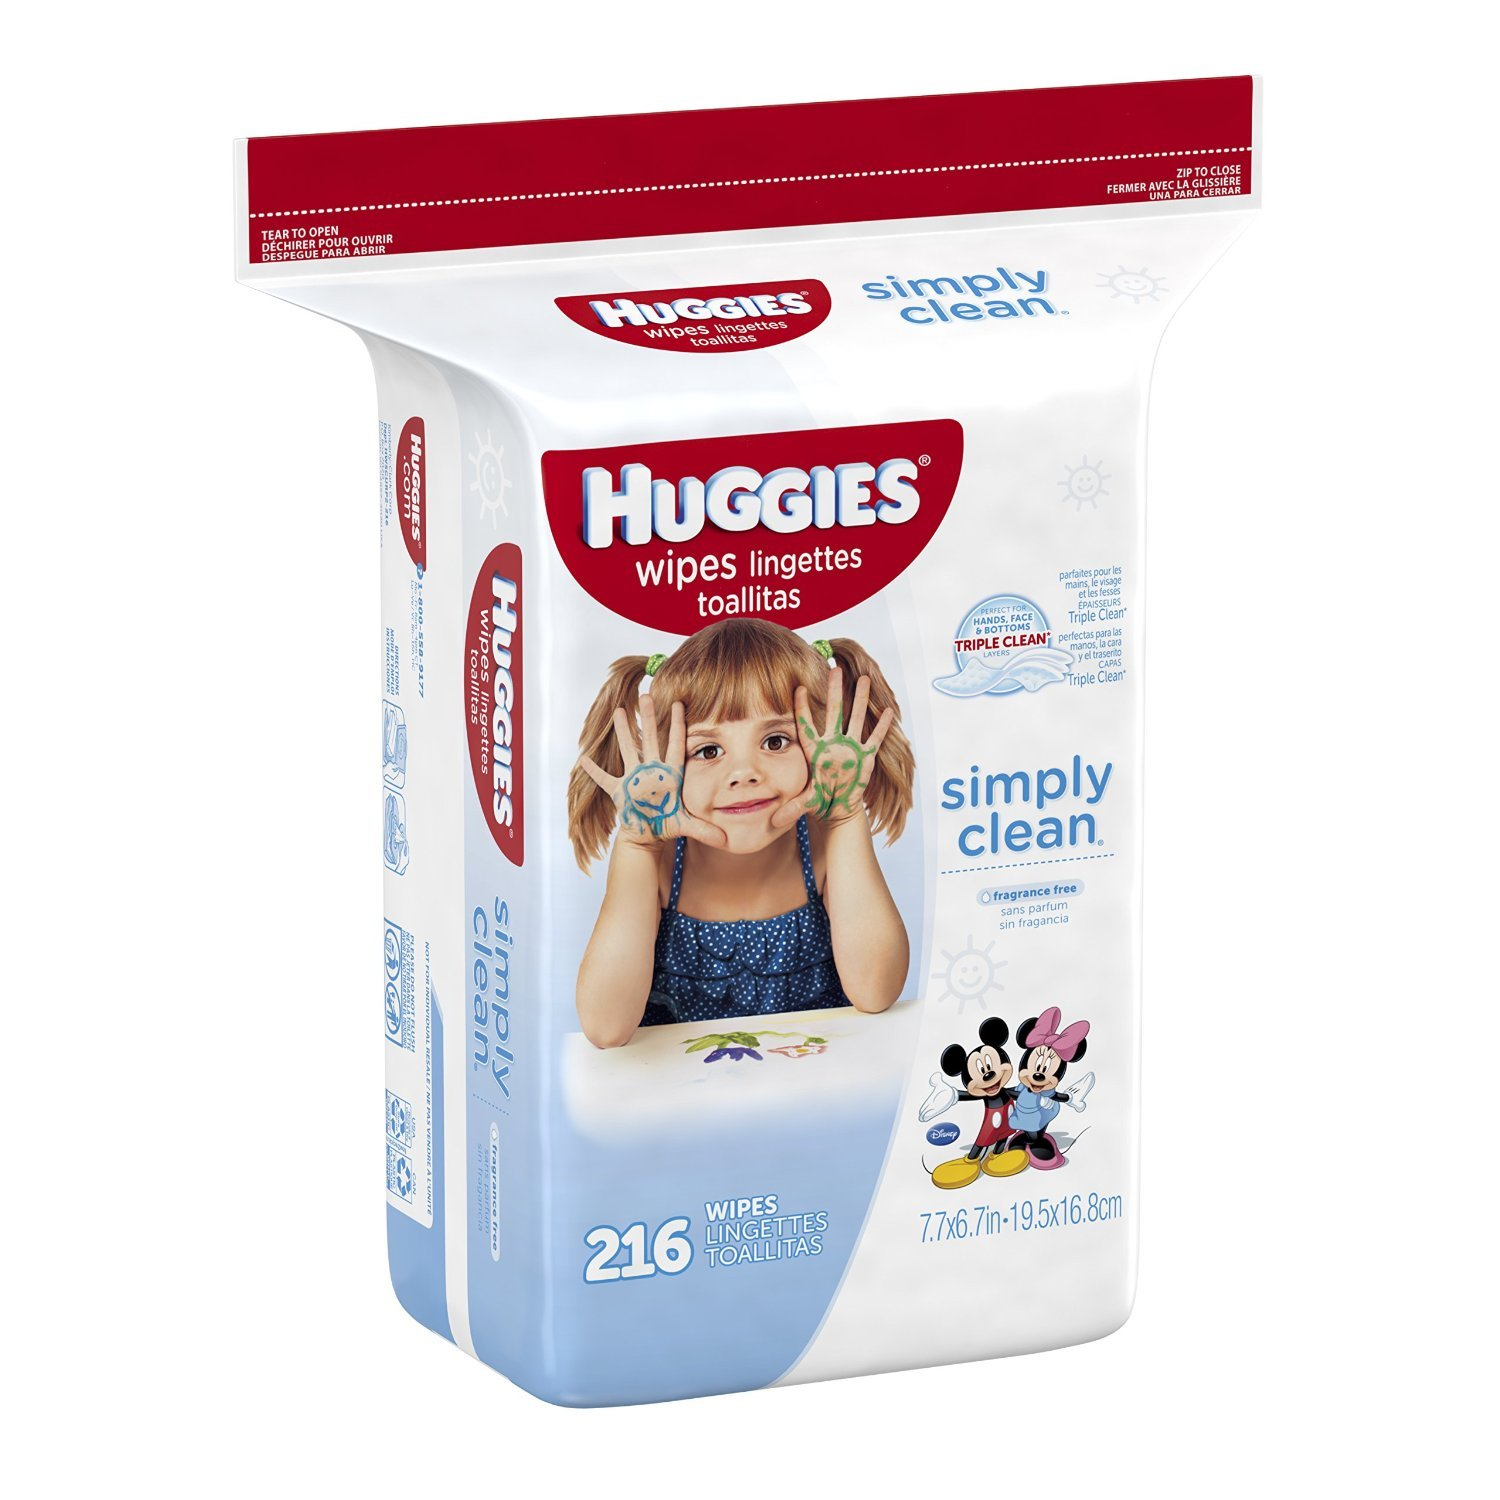 Amazon.com: Huggies Simply Clean Baby Wipes, Refill, 648 Count(Packaging May Vary): Health & Personal Care